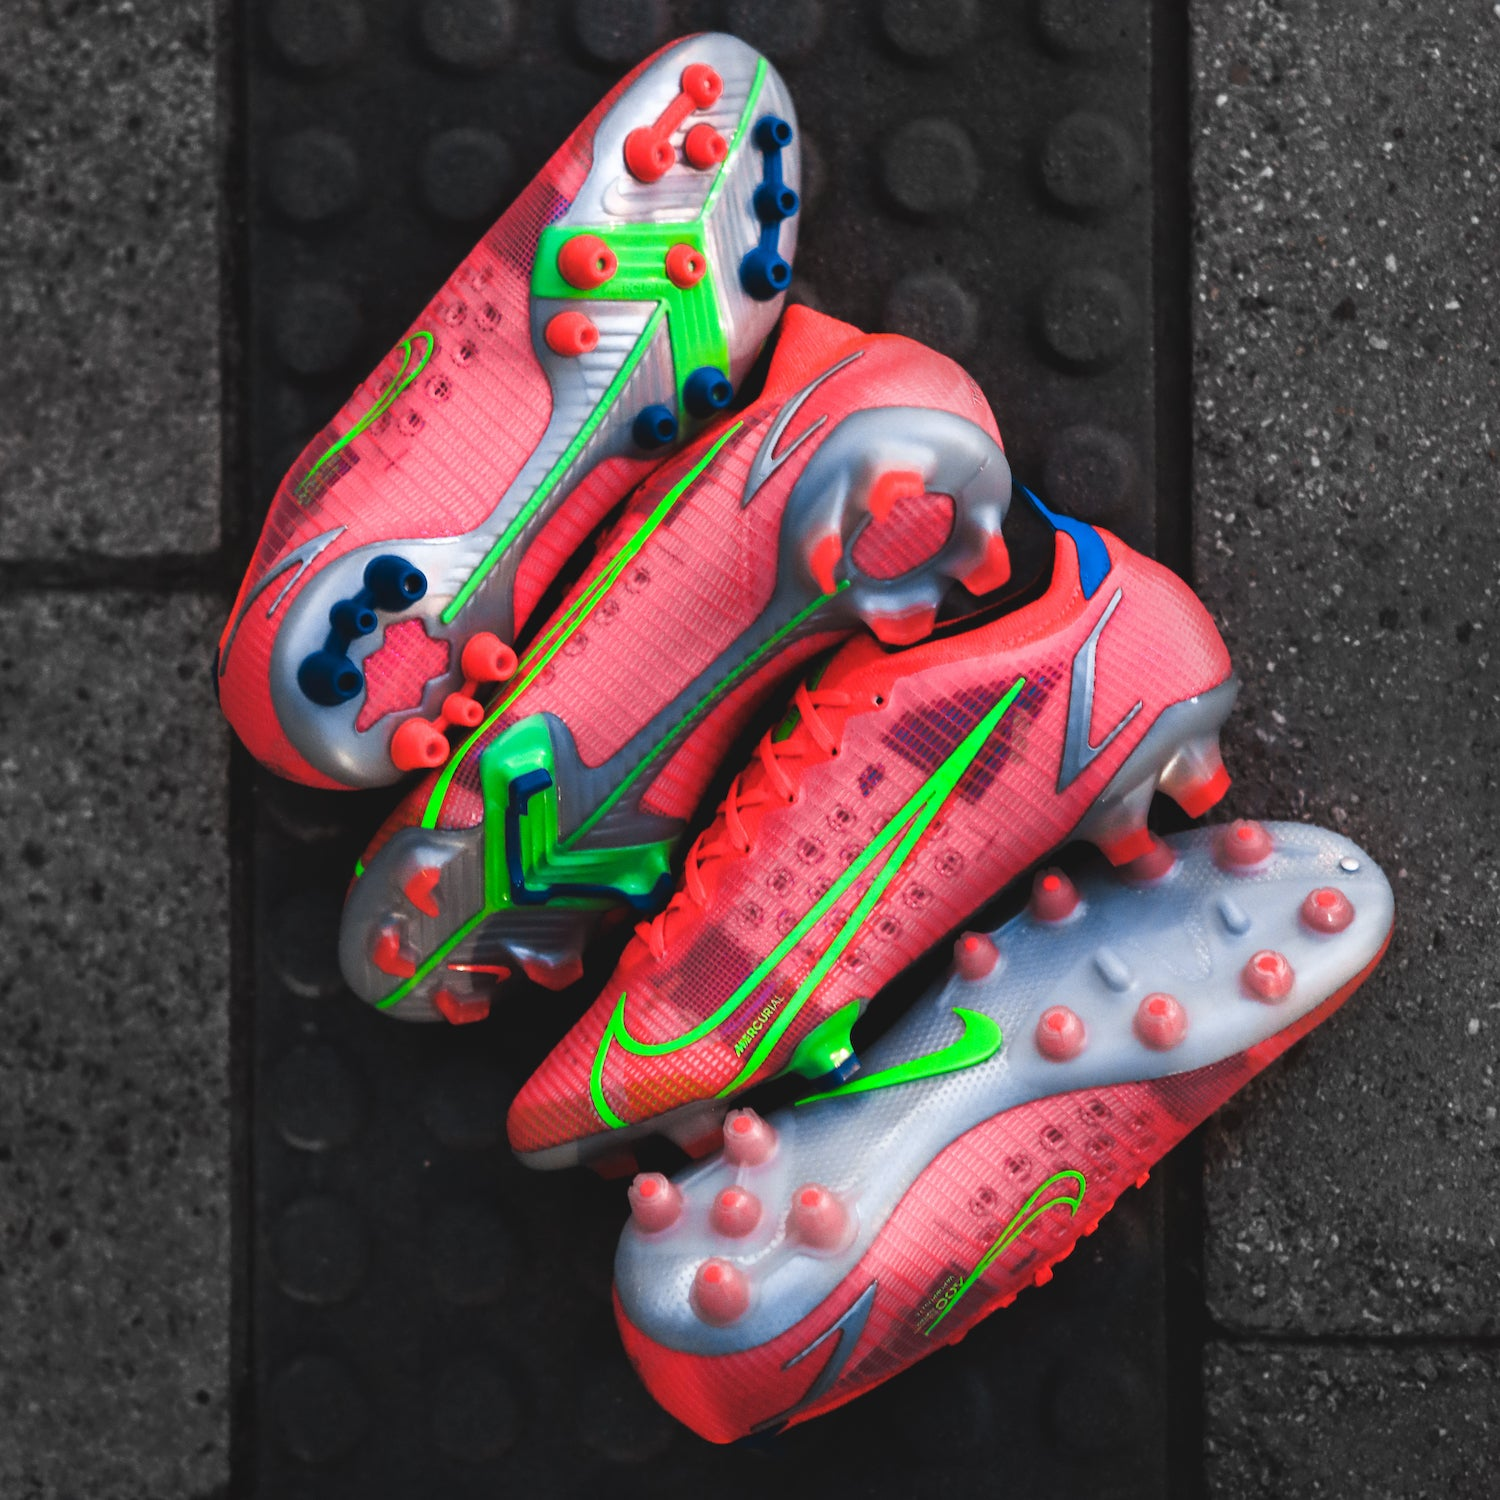 Nike Spectrum Pack Football Boots